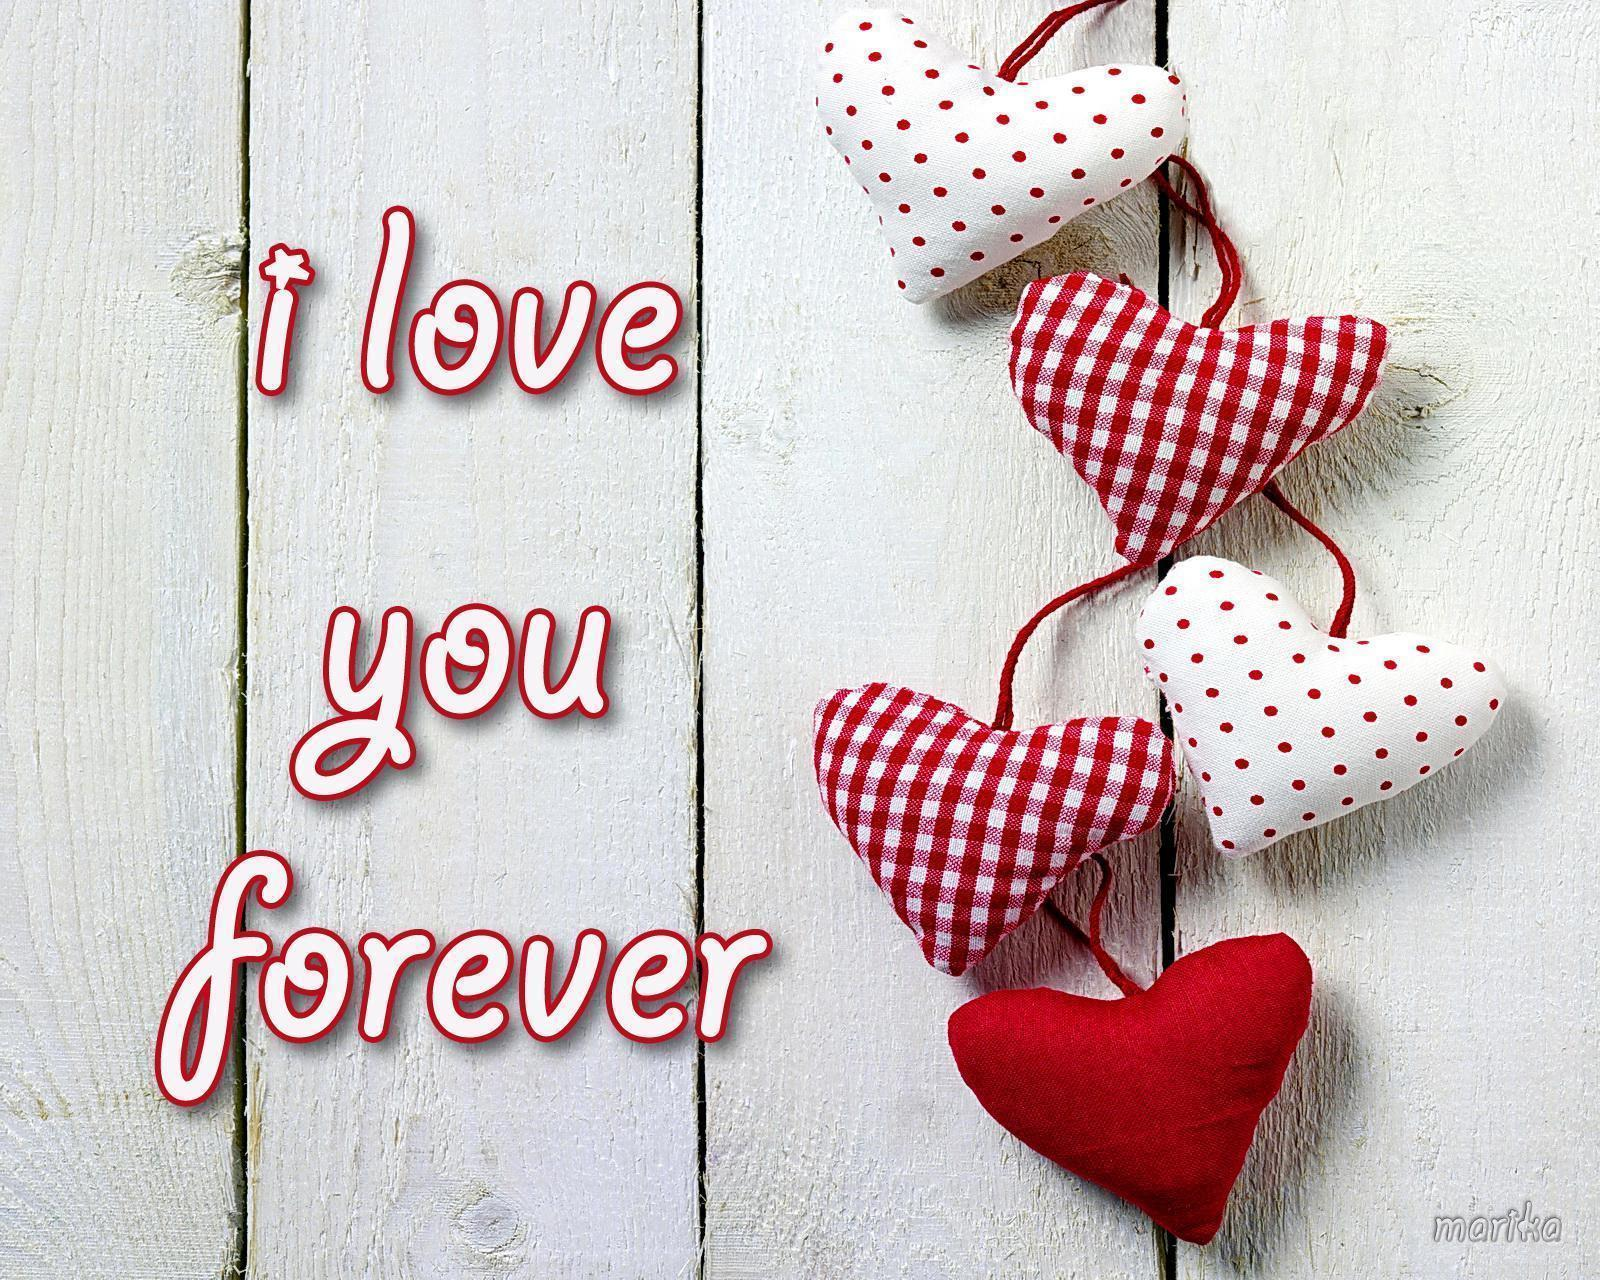 Wallpaper Love You Too : I Love You Wallpapers - Wallpaper cave